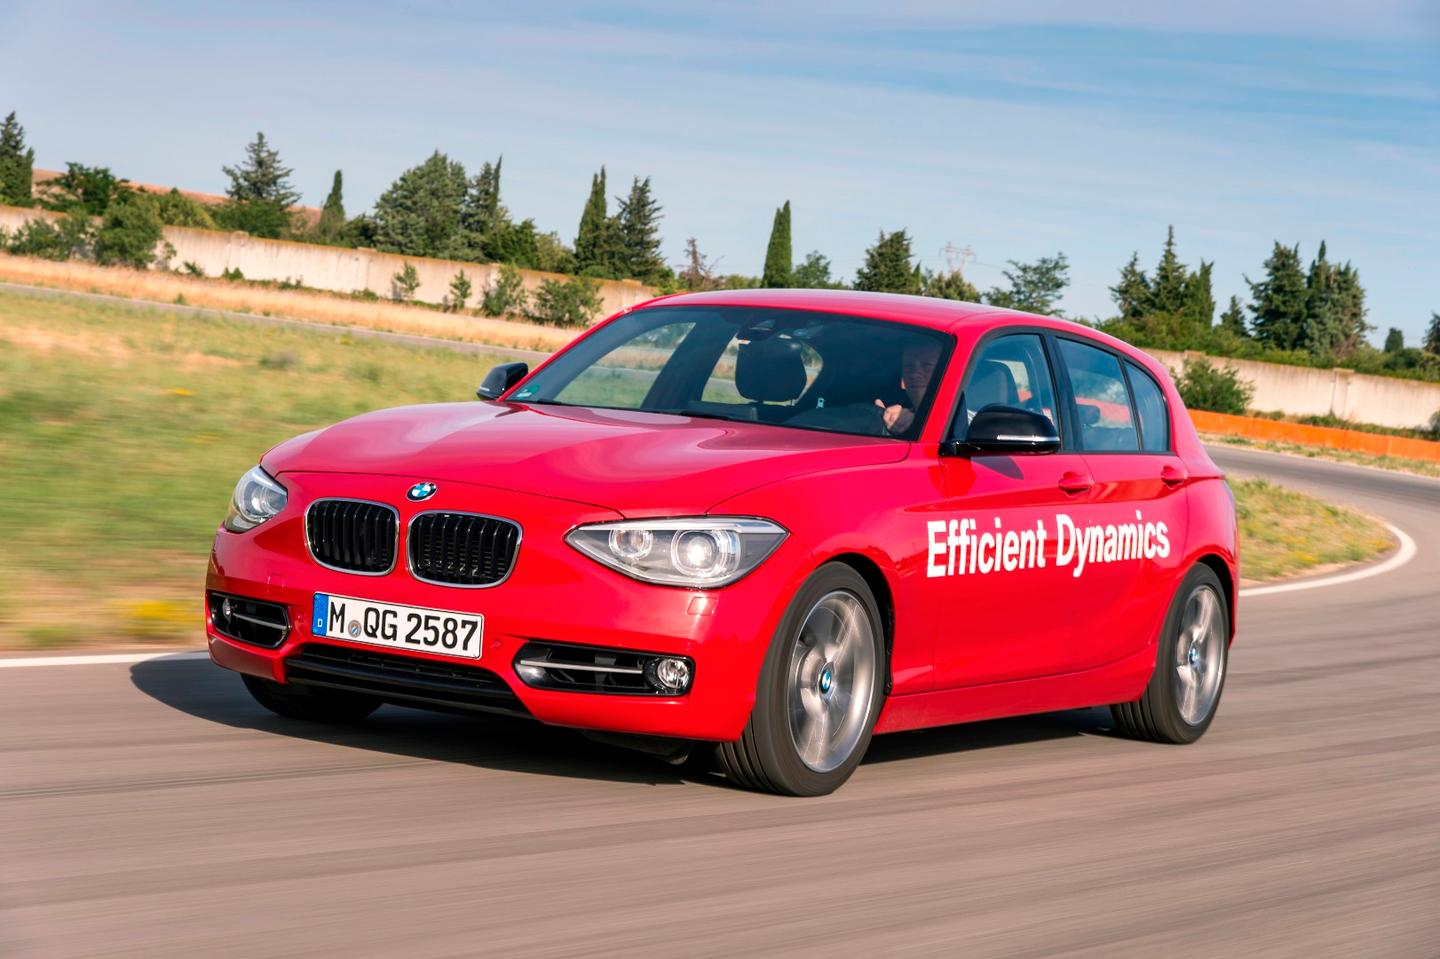 BMW has turned to water injection is the search for greater fuel economy